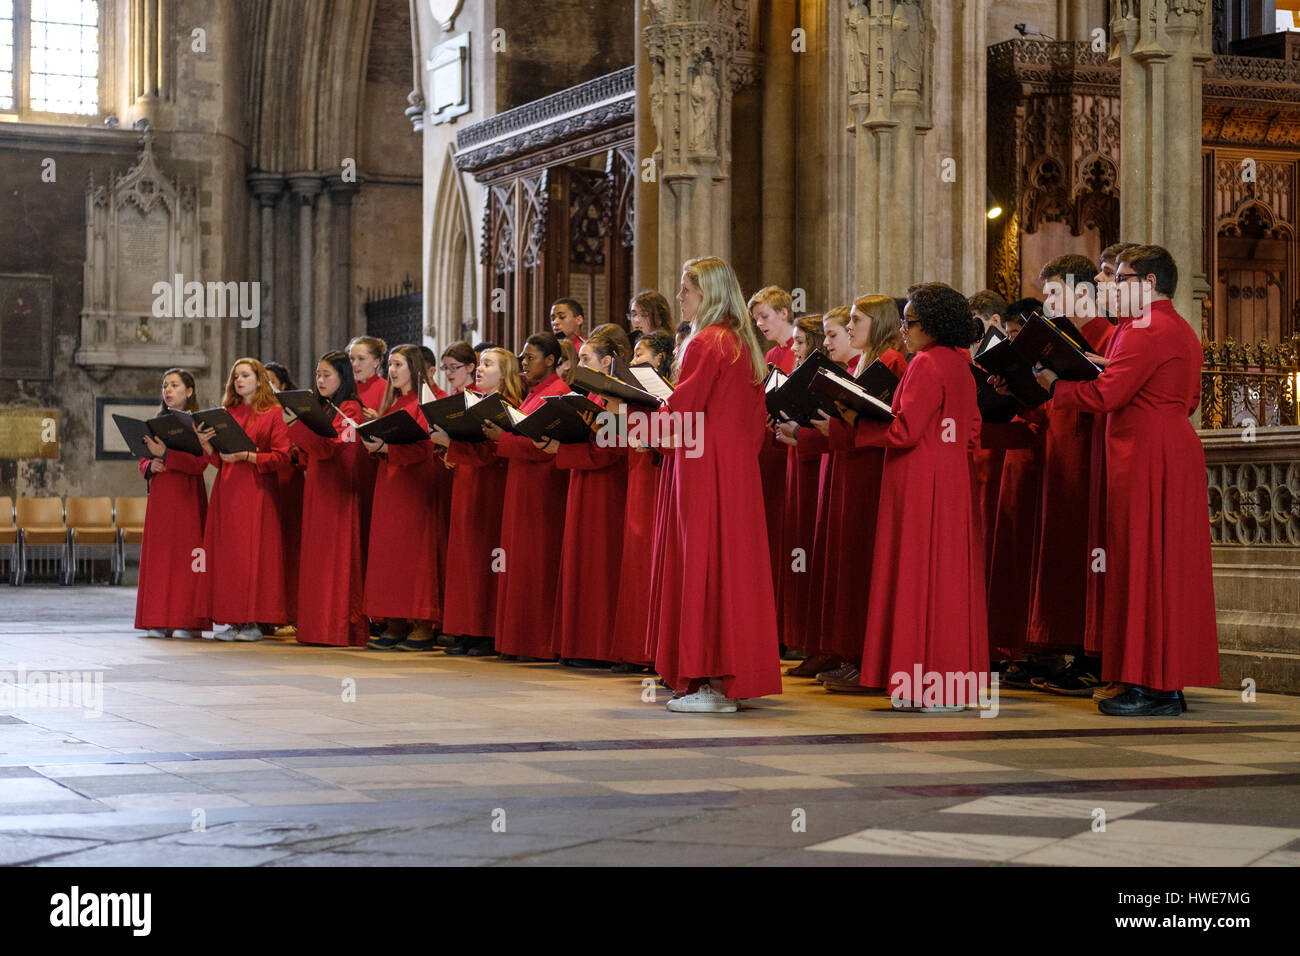 St Paul's School choir from Concrod, New Hampshire performing a recital in Bristol Cathedral, UK. - Stock Image